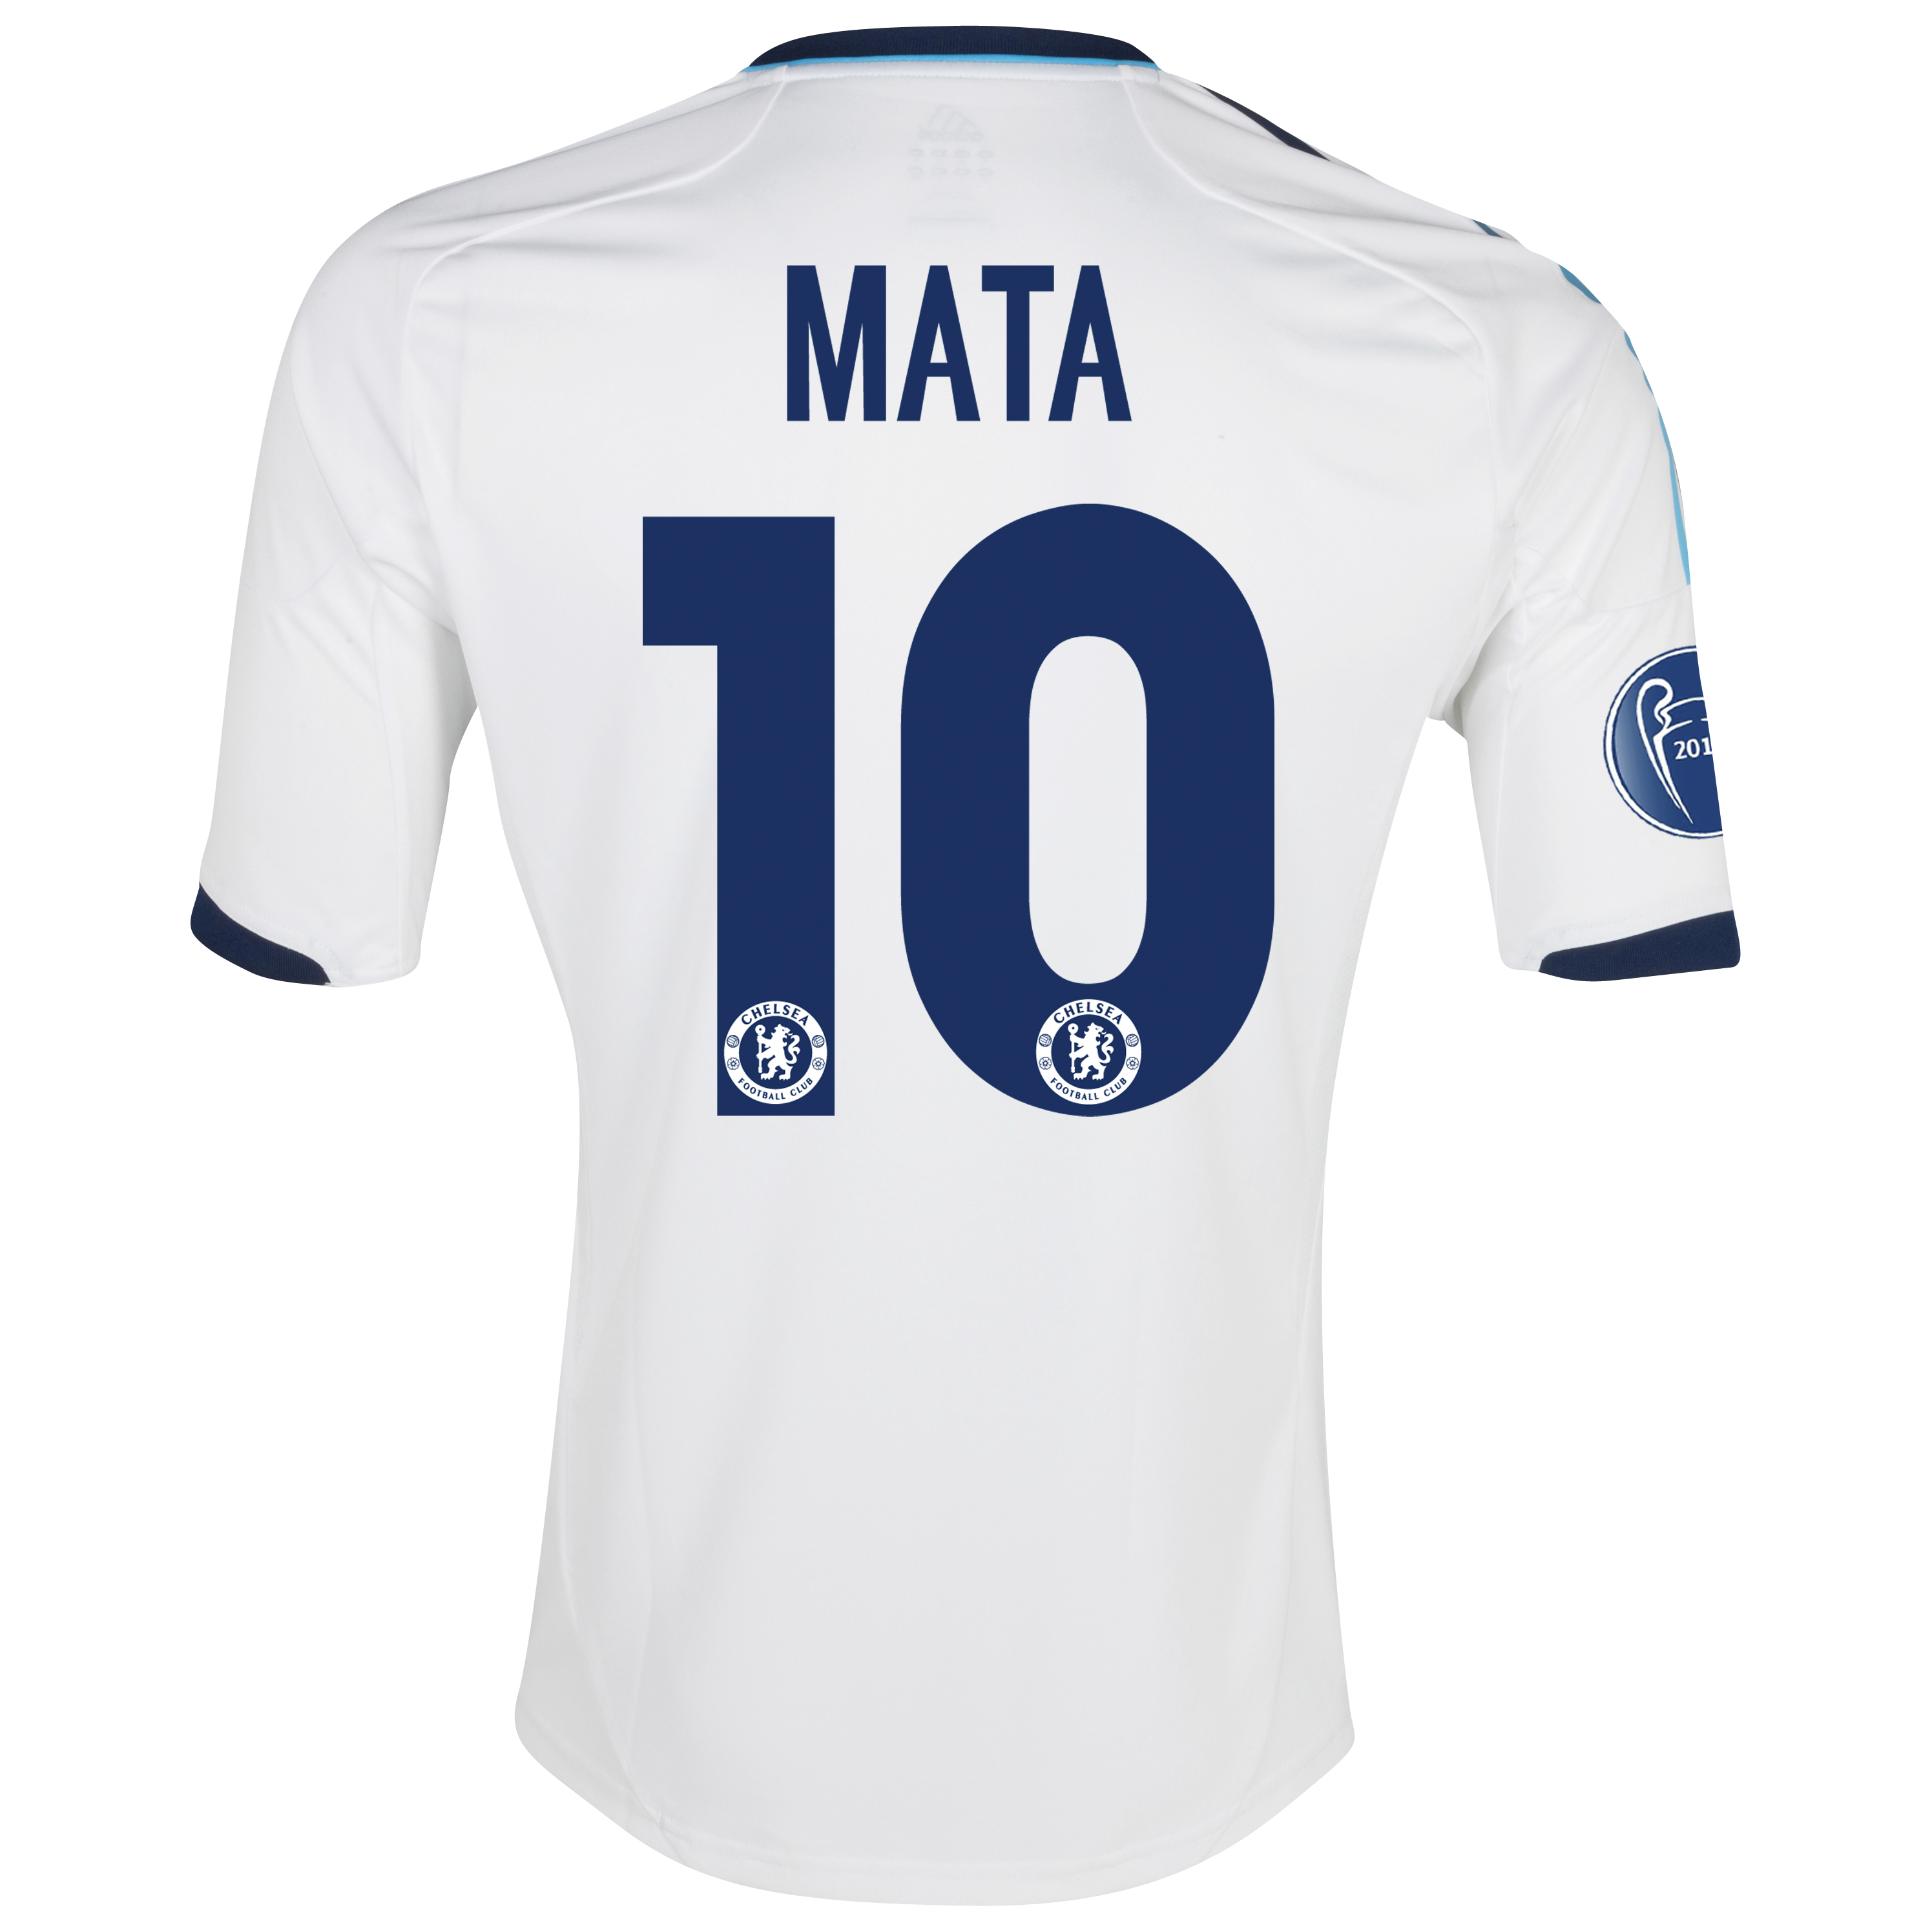 Chelsea UEFA Champions League Shirt Away Shirt 2012/13 - with Mata 10 printing